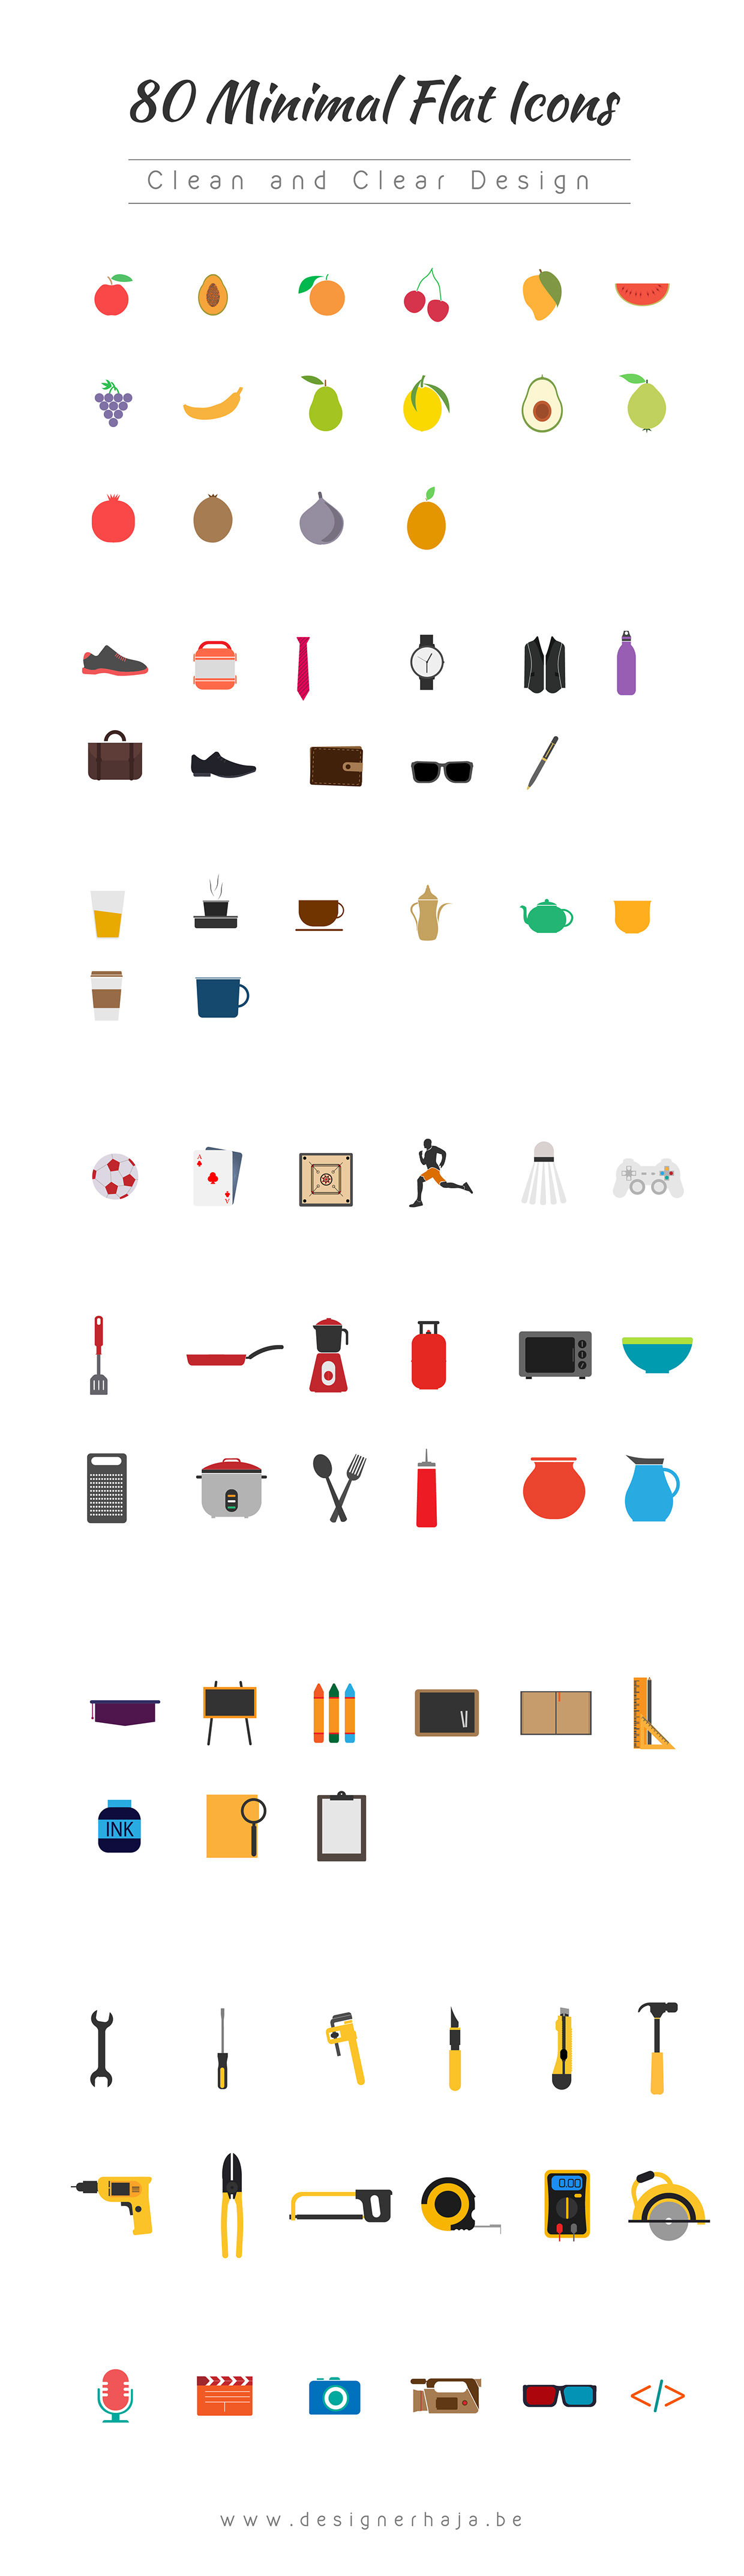 80-Minimal-Flat-Icons-Download